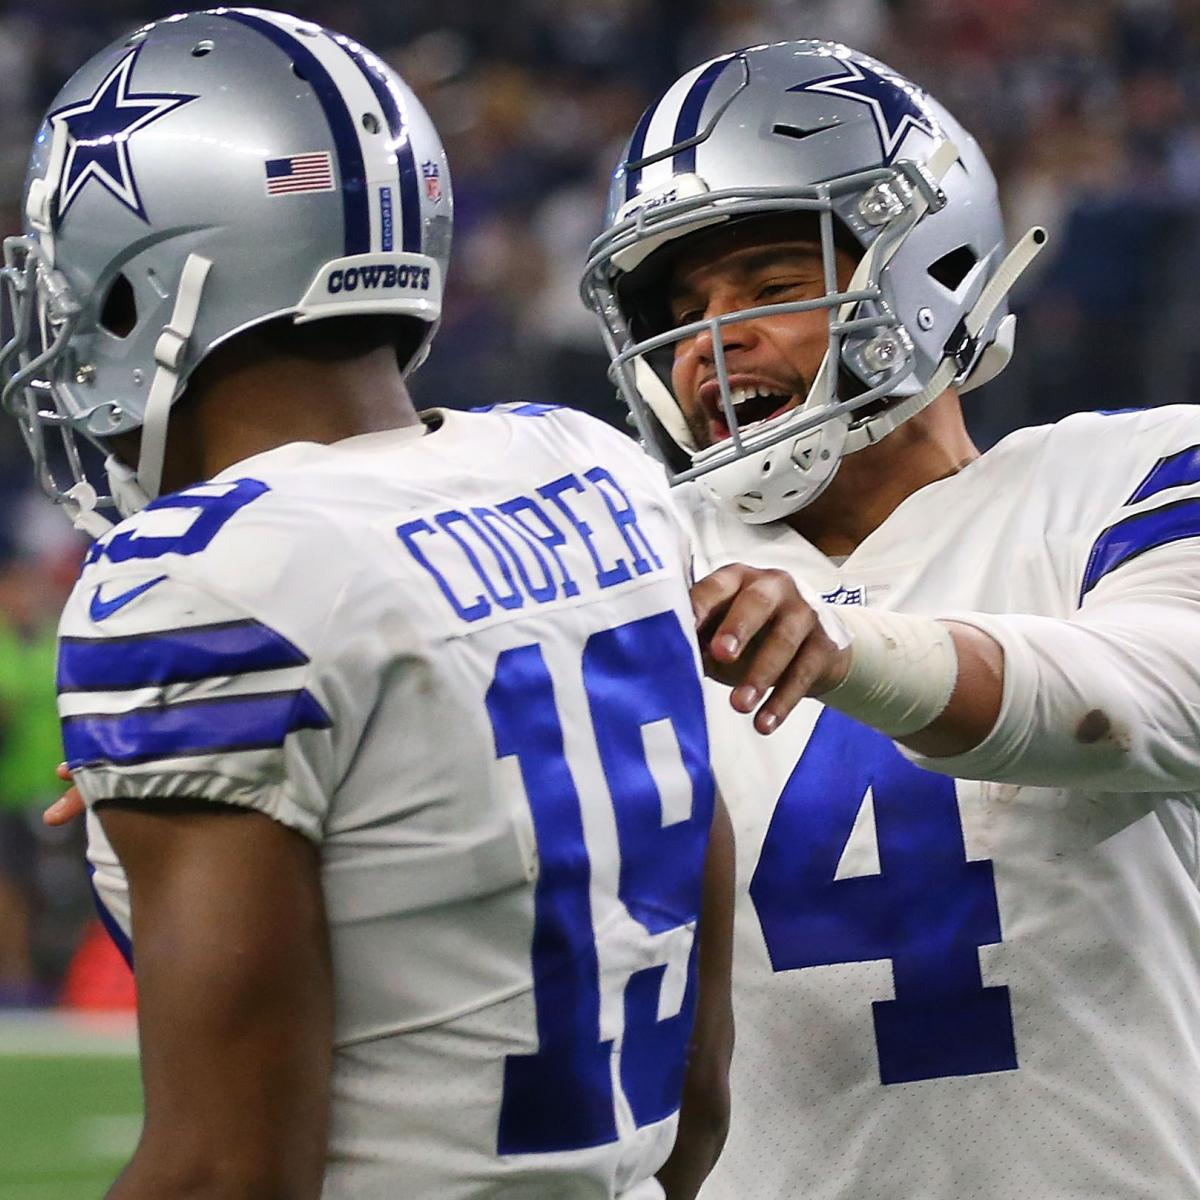 a77938ac5 Cowboys Rumors: 'More Progress' Made for Dak Prescott Contract Than Amari  Cooper | Bleacher Report | Latest News, Videos and Highlights